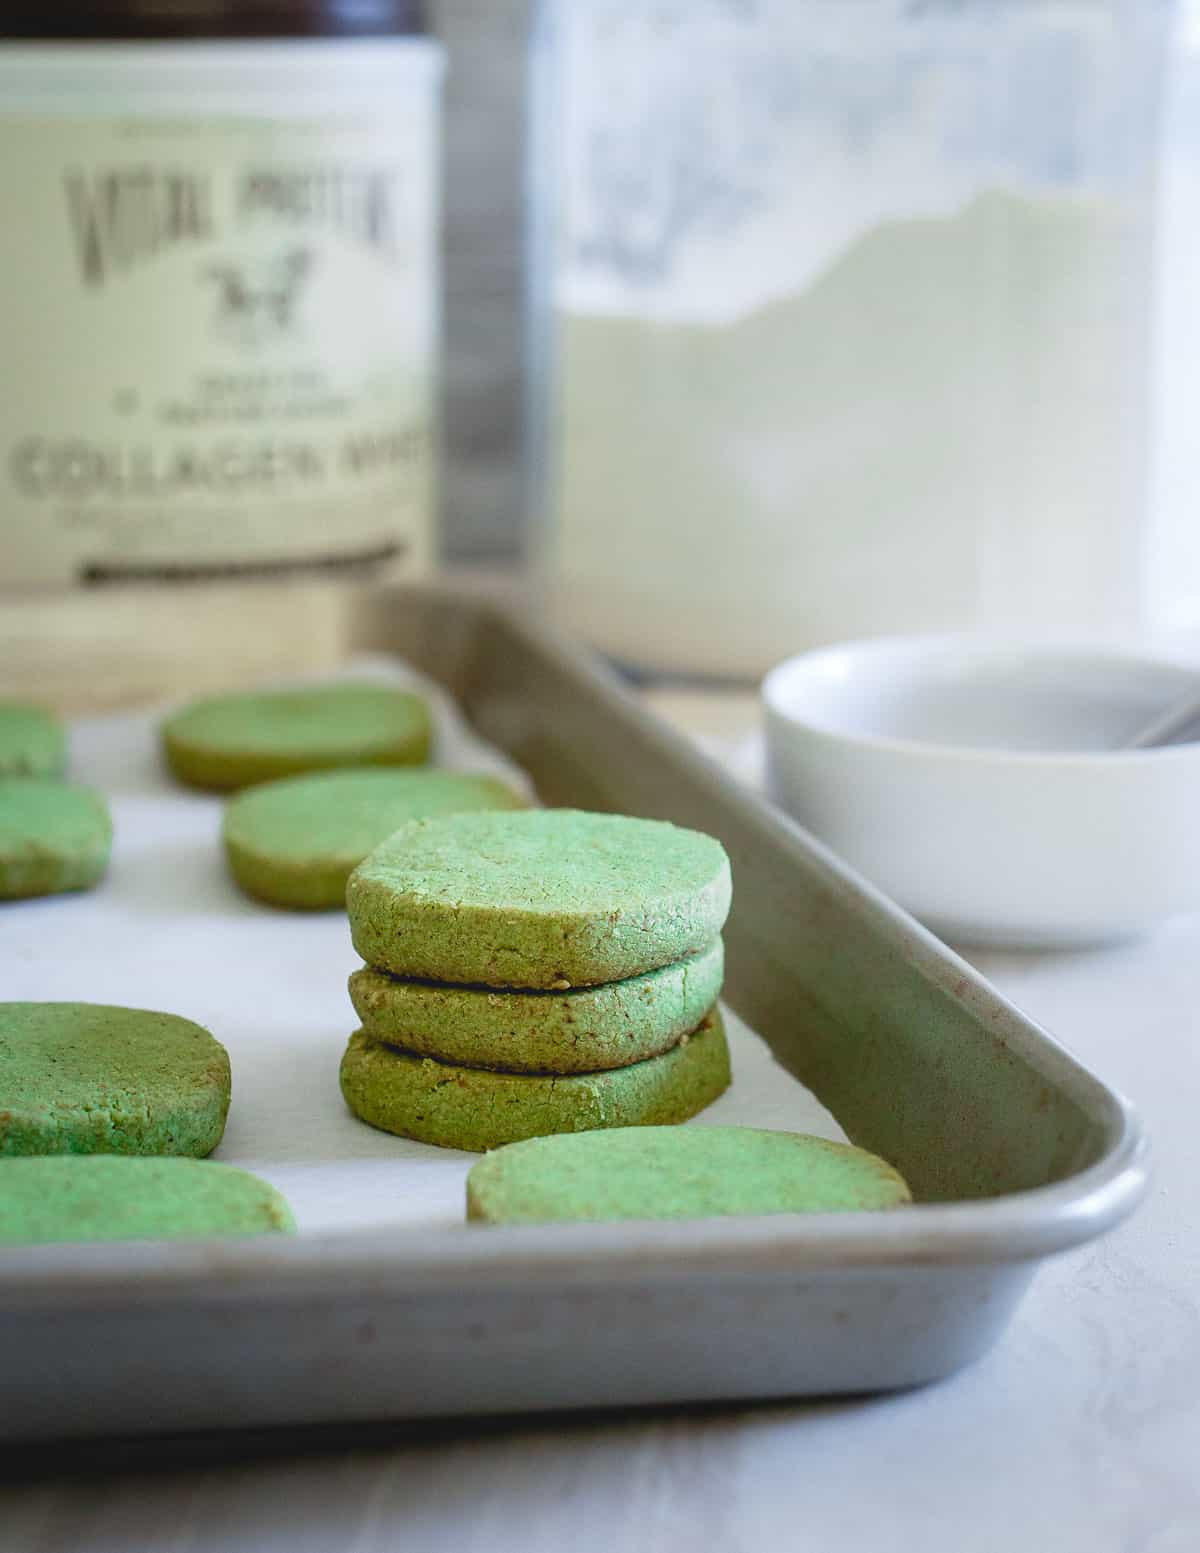 Infused with matcha green tea powder, these shortbread cookies are perfect for the holidays!